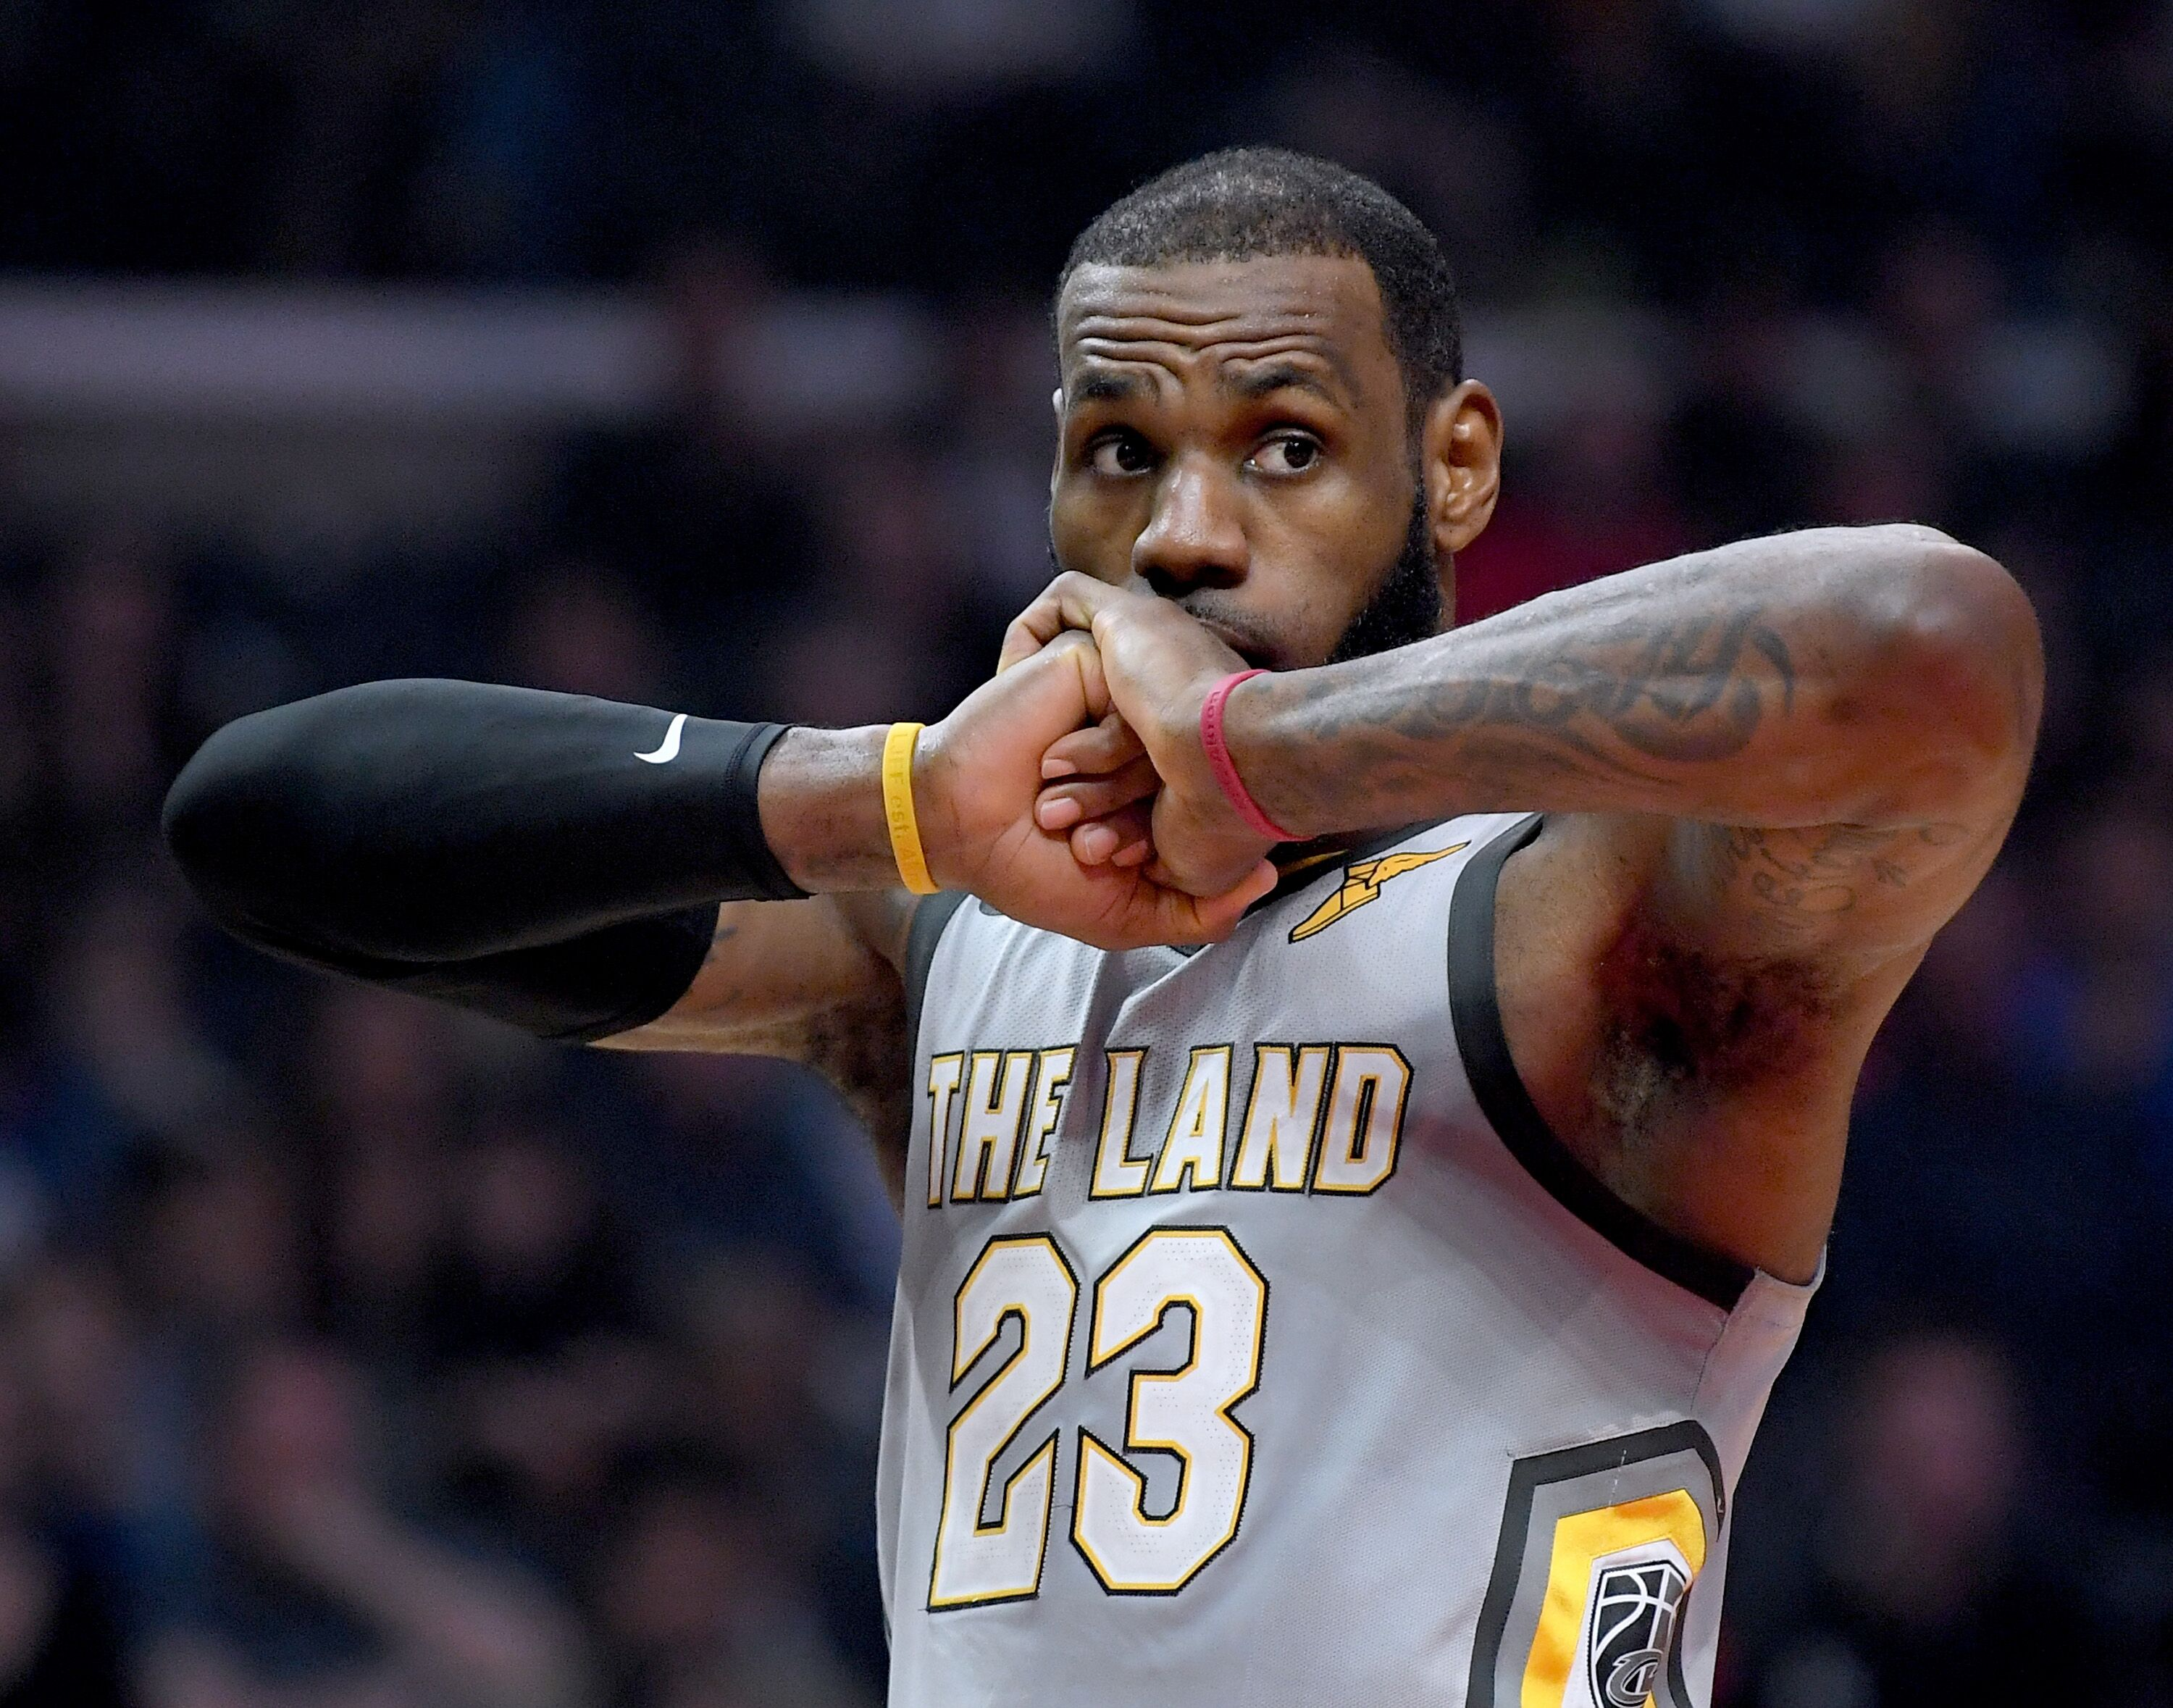 929942764-cleveland-cavaliers-v-los-angeles-clippers.jpg